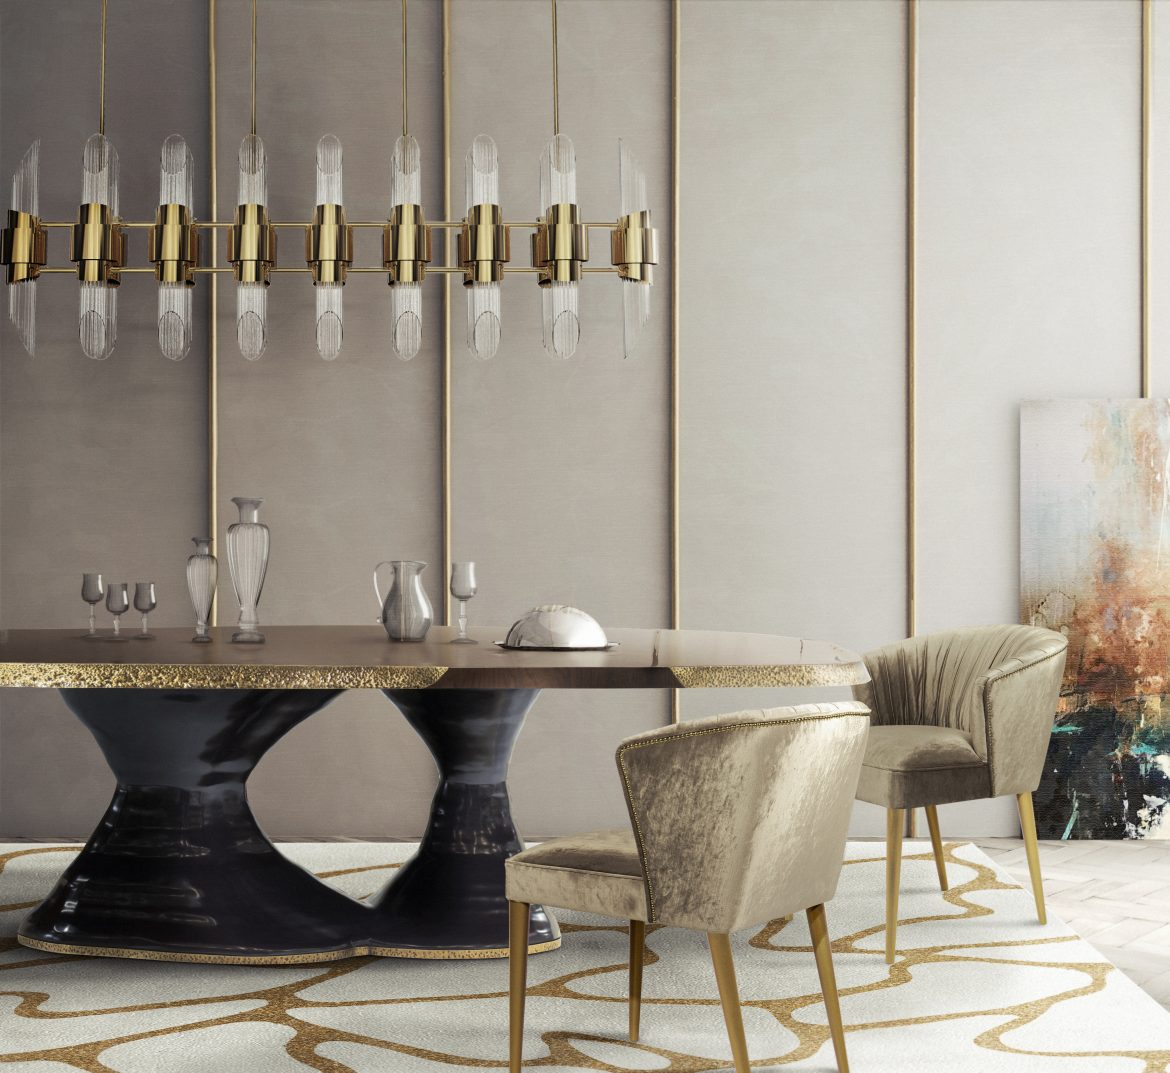 dining chairs 25 Dining Chairs That Fit In Any Design Project – PART II BB tycho plateau mesa jantar